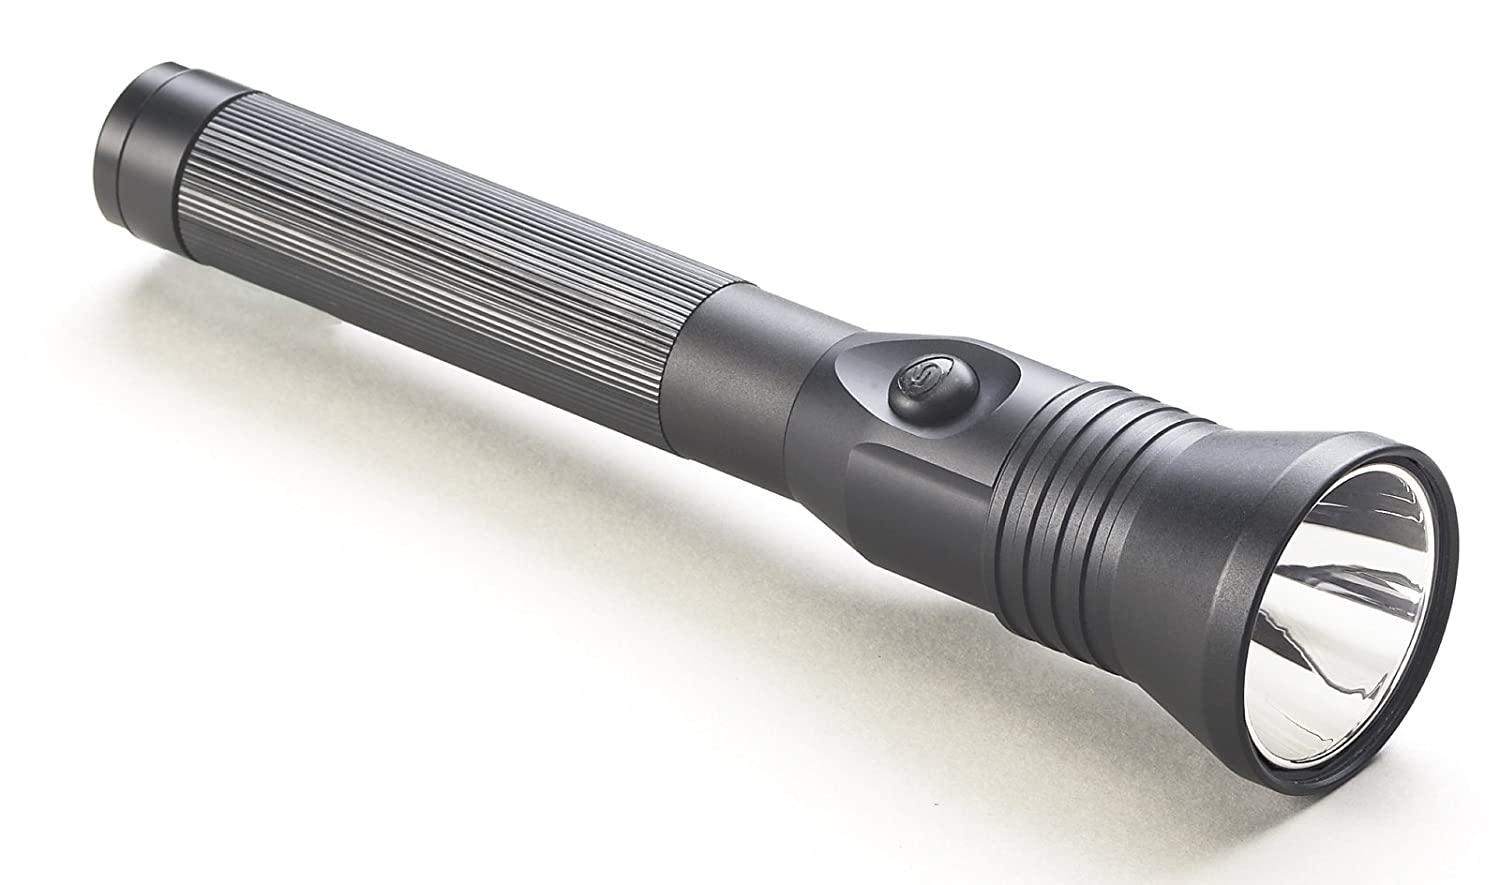 Streamlight 75900 Stinger DS LED High Power Rechargeable Flashlight without Charger [並行輸入品] B01NBK7ZKO